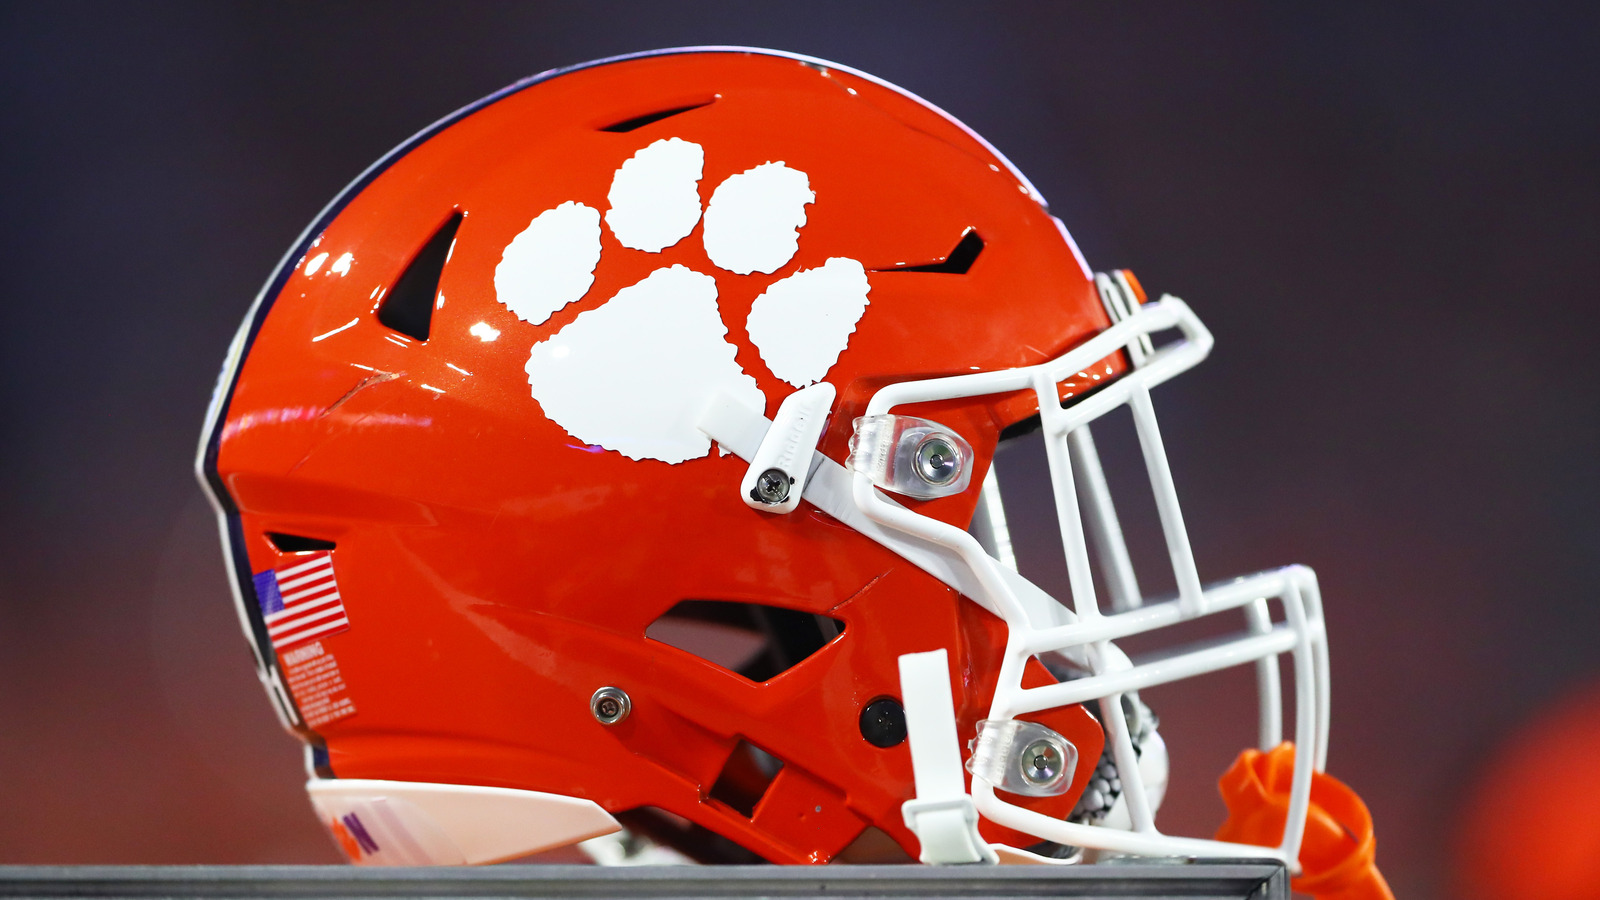 College Football Wallpapers Hd Clemson Football Comes To Aid Of Injured Student After